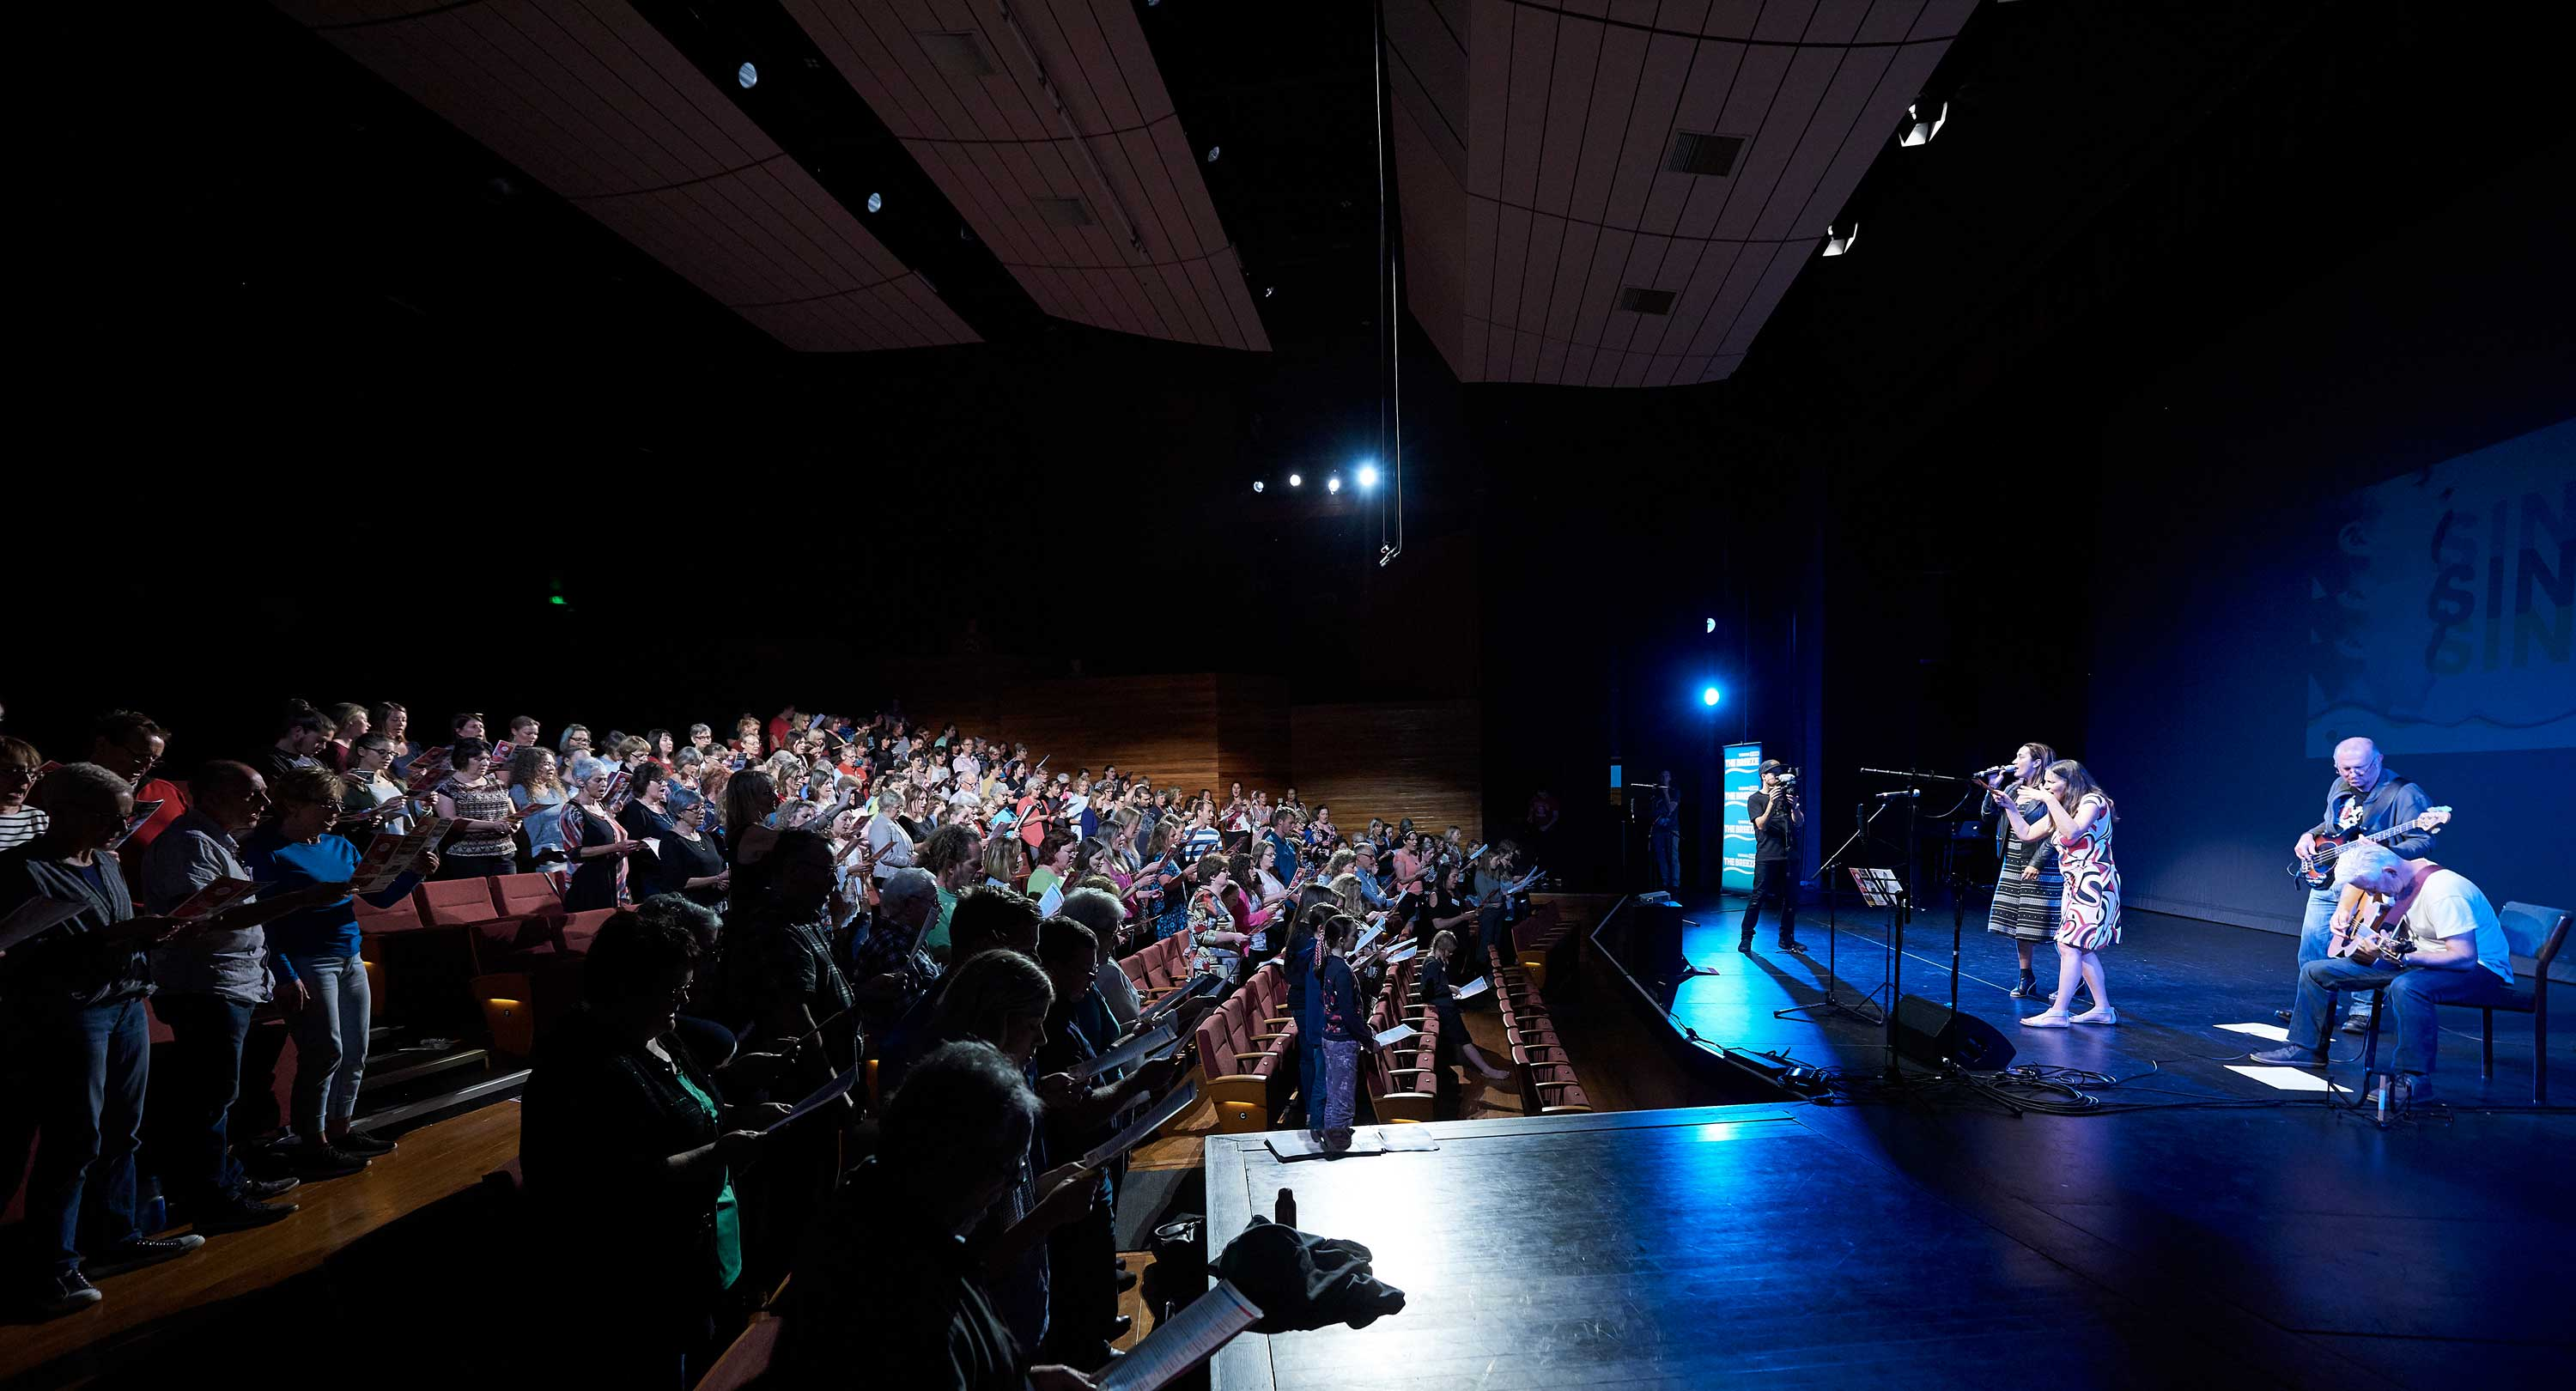 A view from the stage of the participating singers for Sing Sing Sing